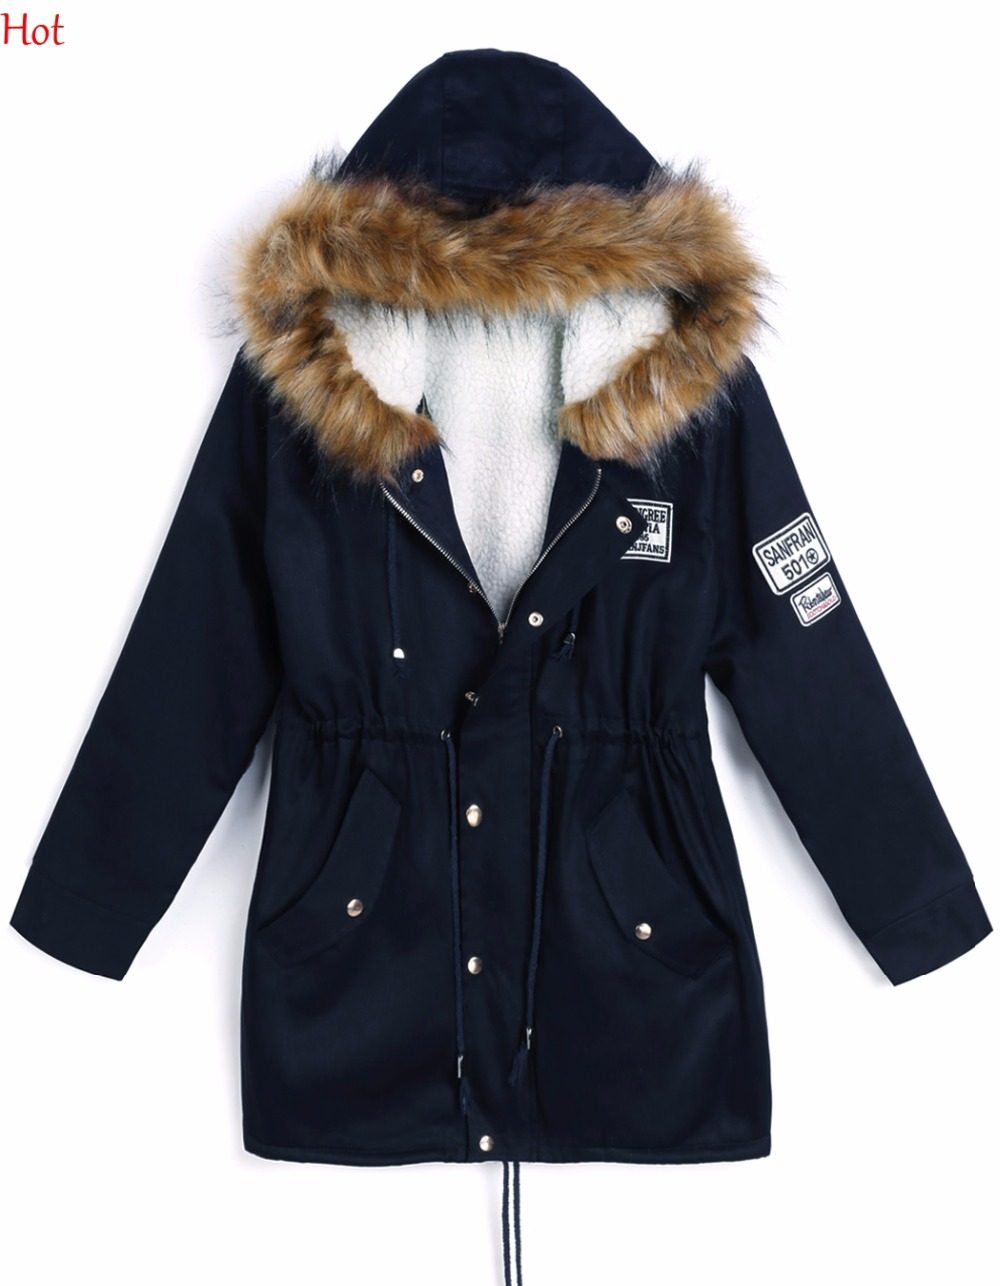 Shop from the world's largest selection and best deals for Blue Coats & Jackets for Women. Free delivery and free returns on eBay Plus items.